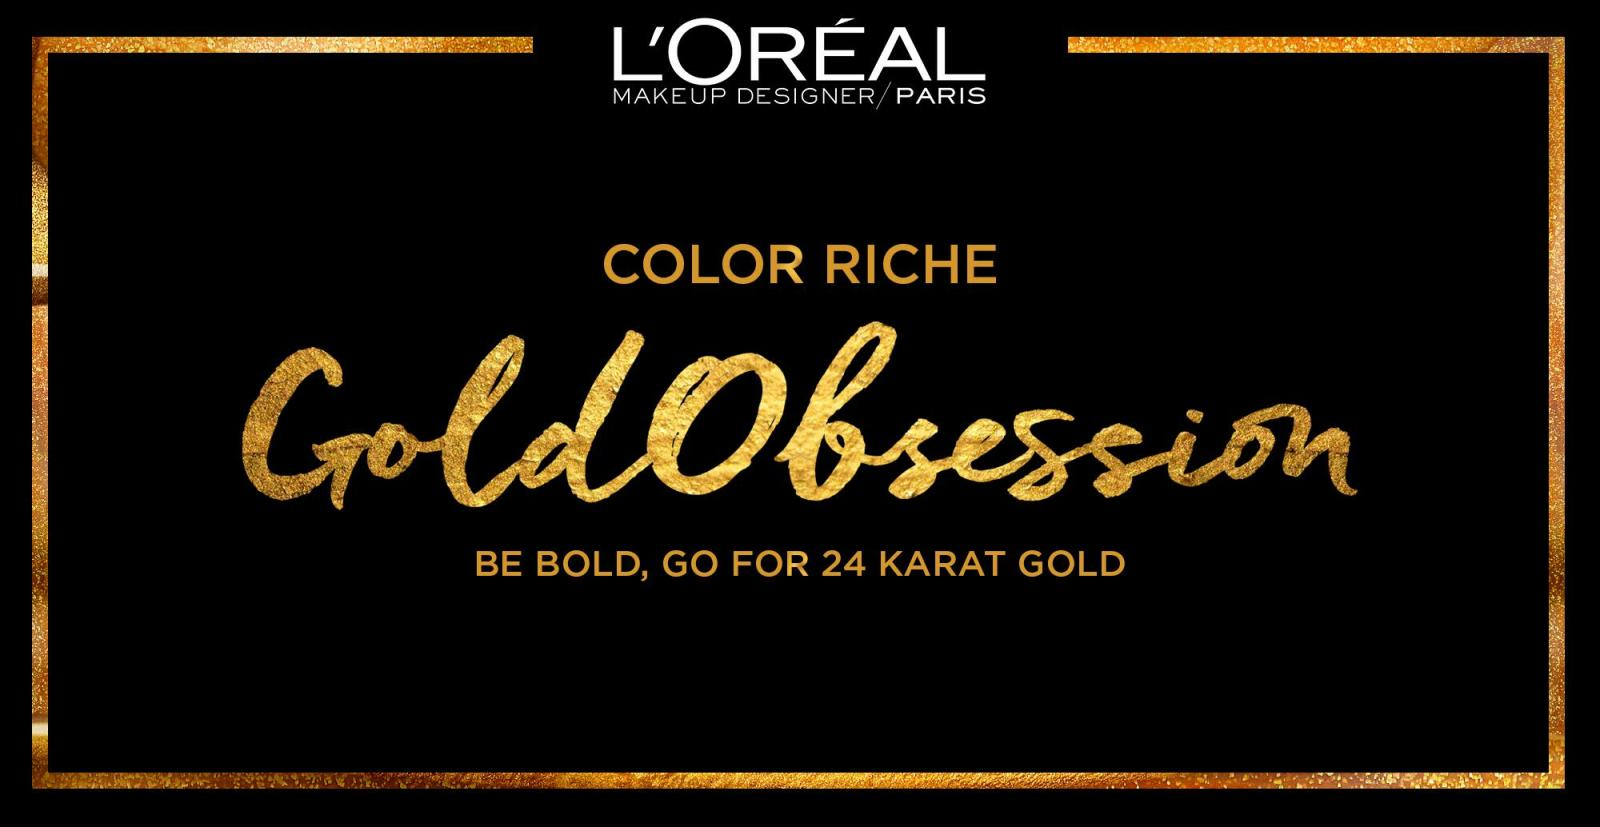 LOreal Paris Color Riche Gold Obsession Lipstick 3.7g (Le ...